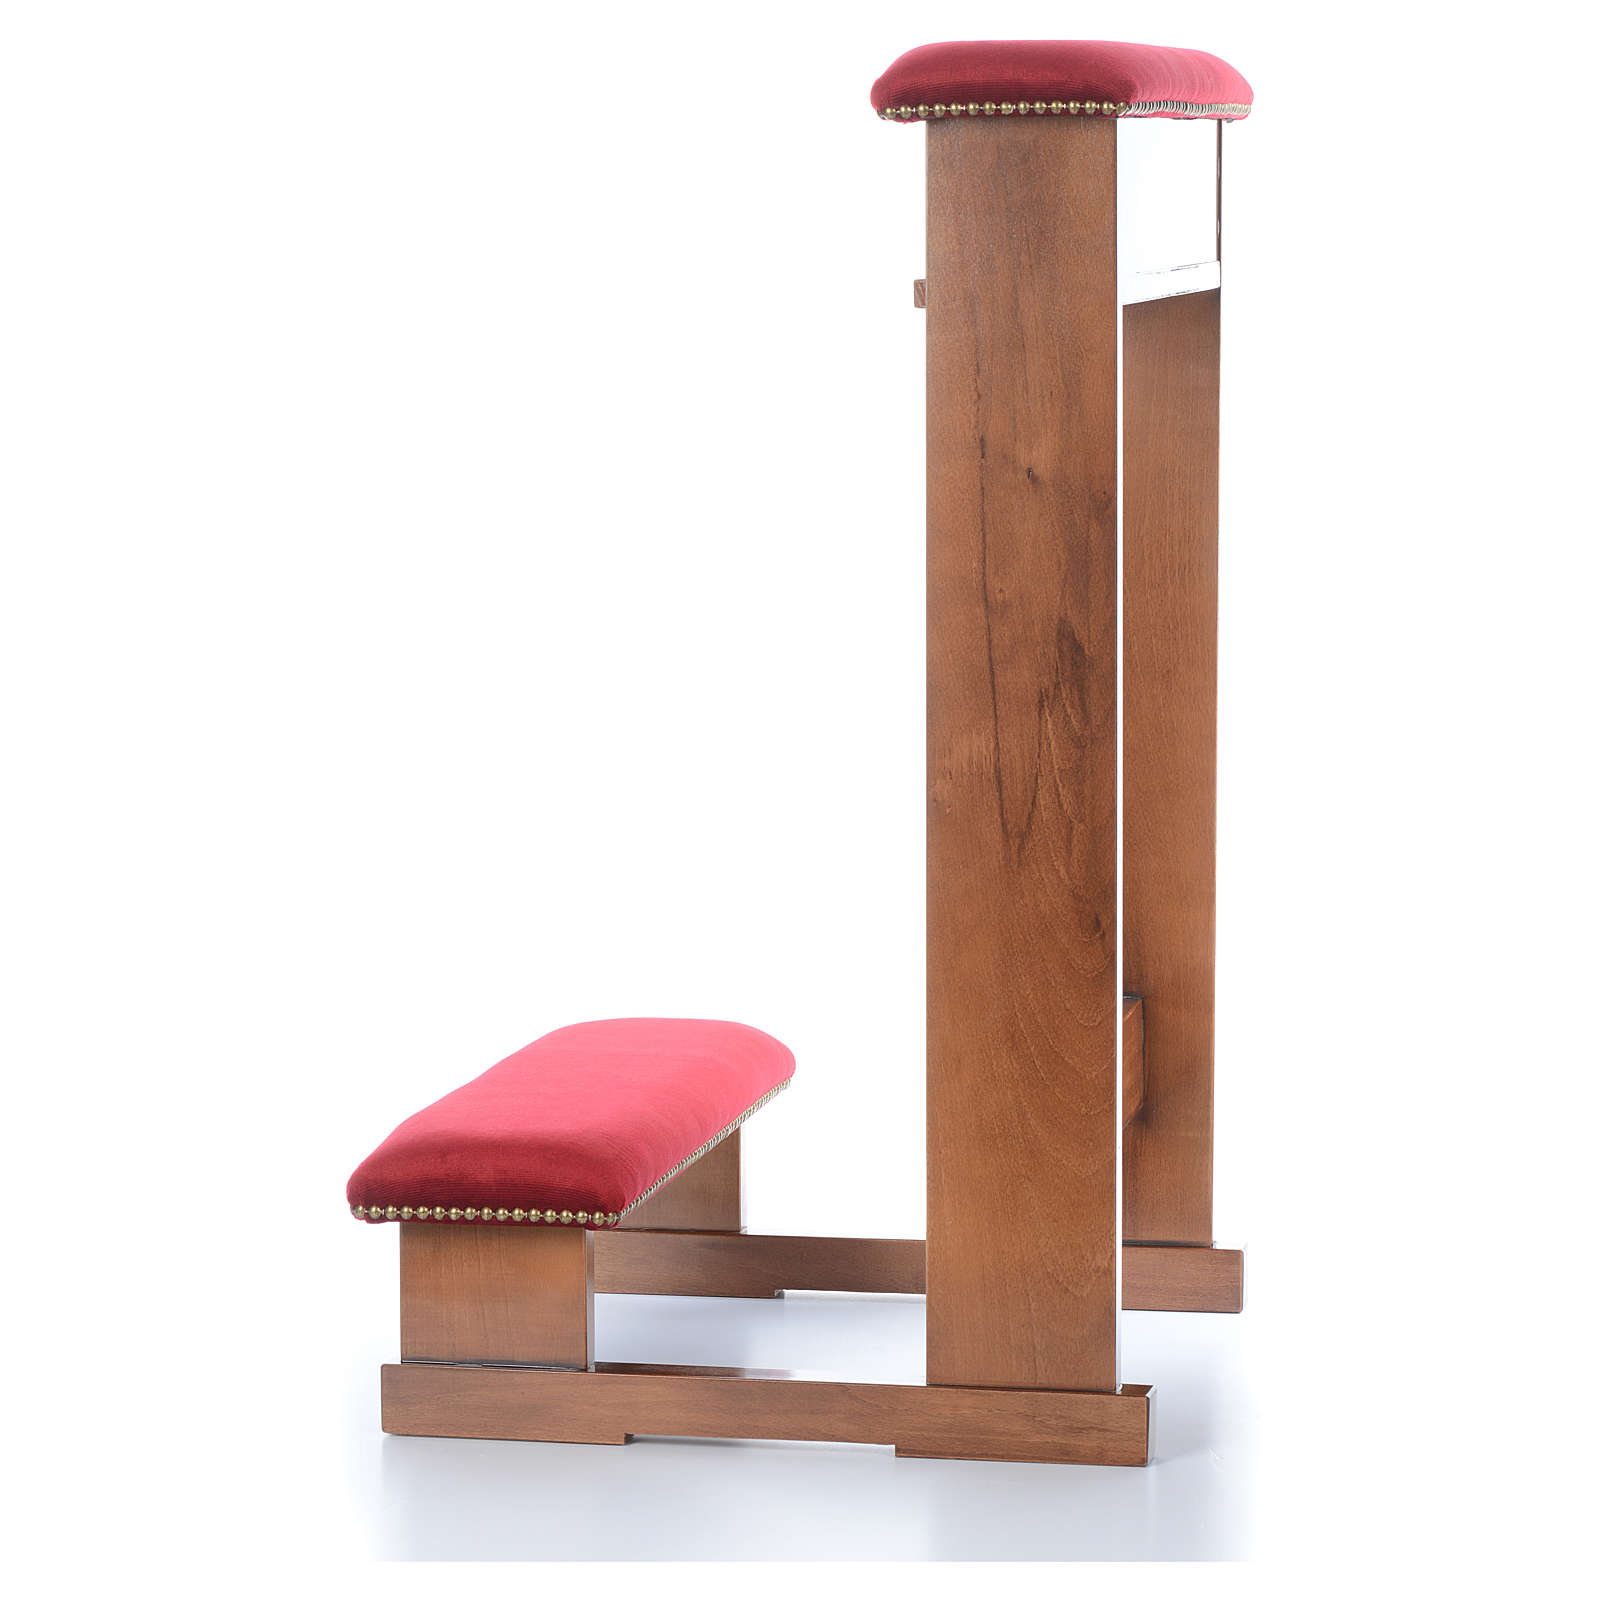 Kneeler Assisi model, light brown with red fabric 4